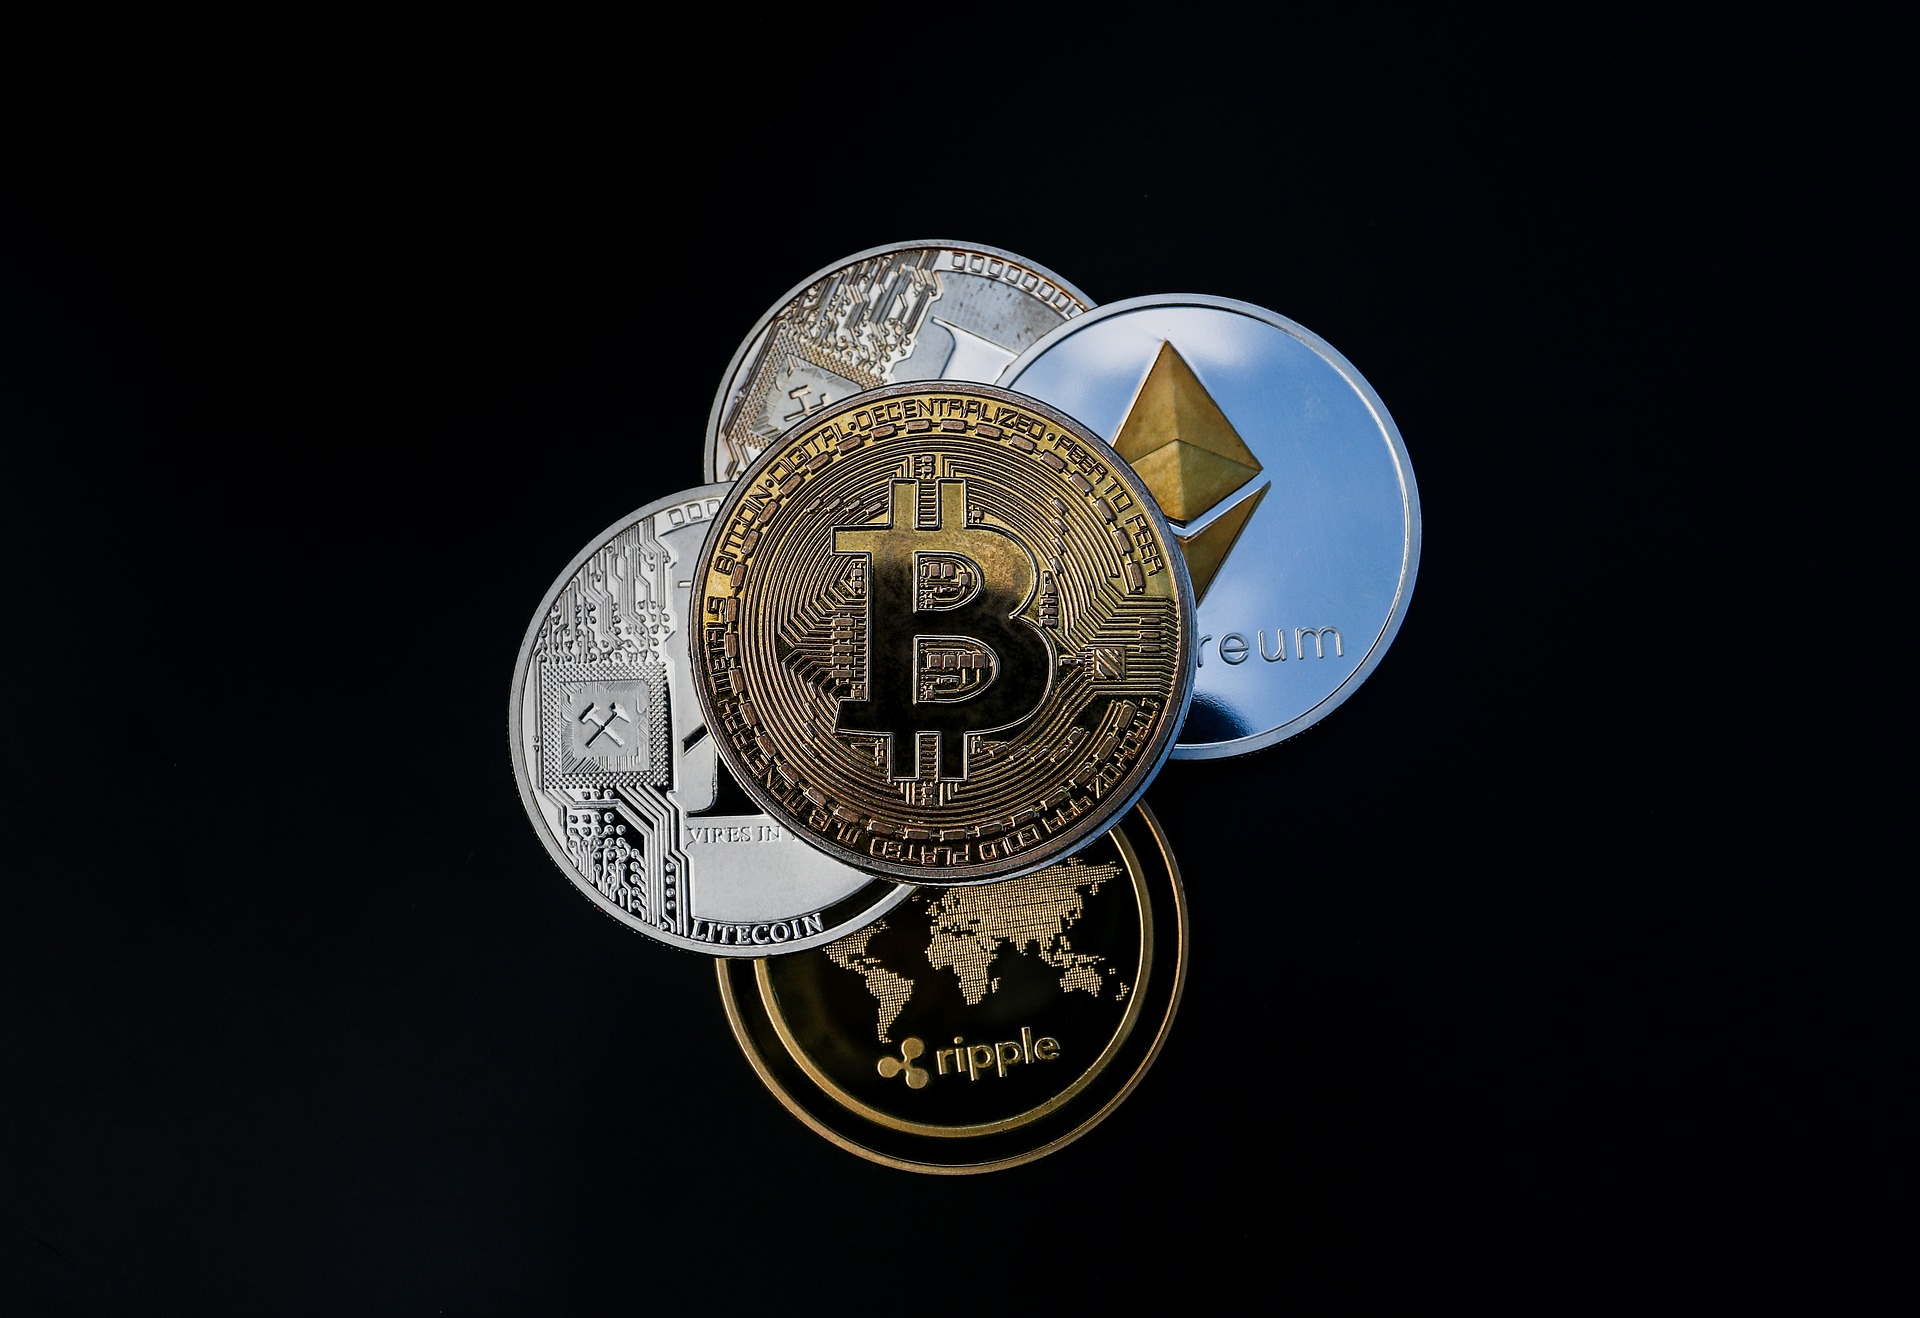 An image of several cryptocurrencies like Bitcoin, Ethereum, Litecoin, etc.